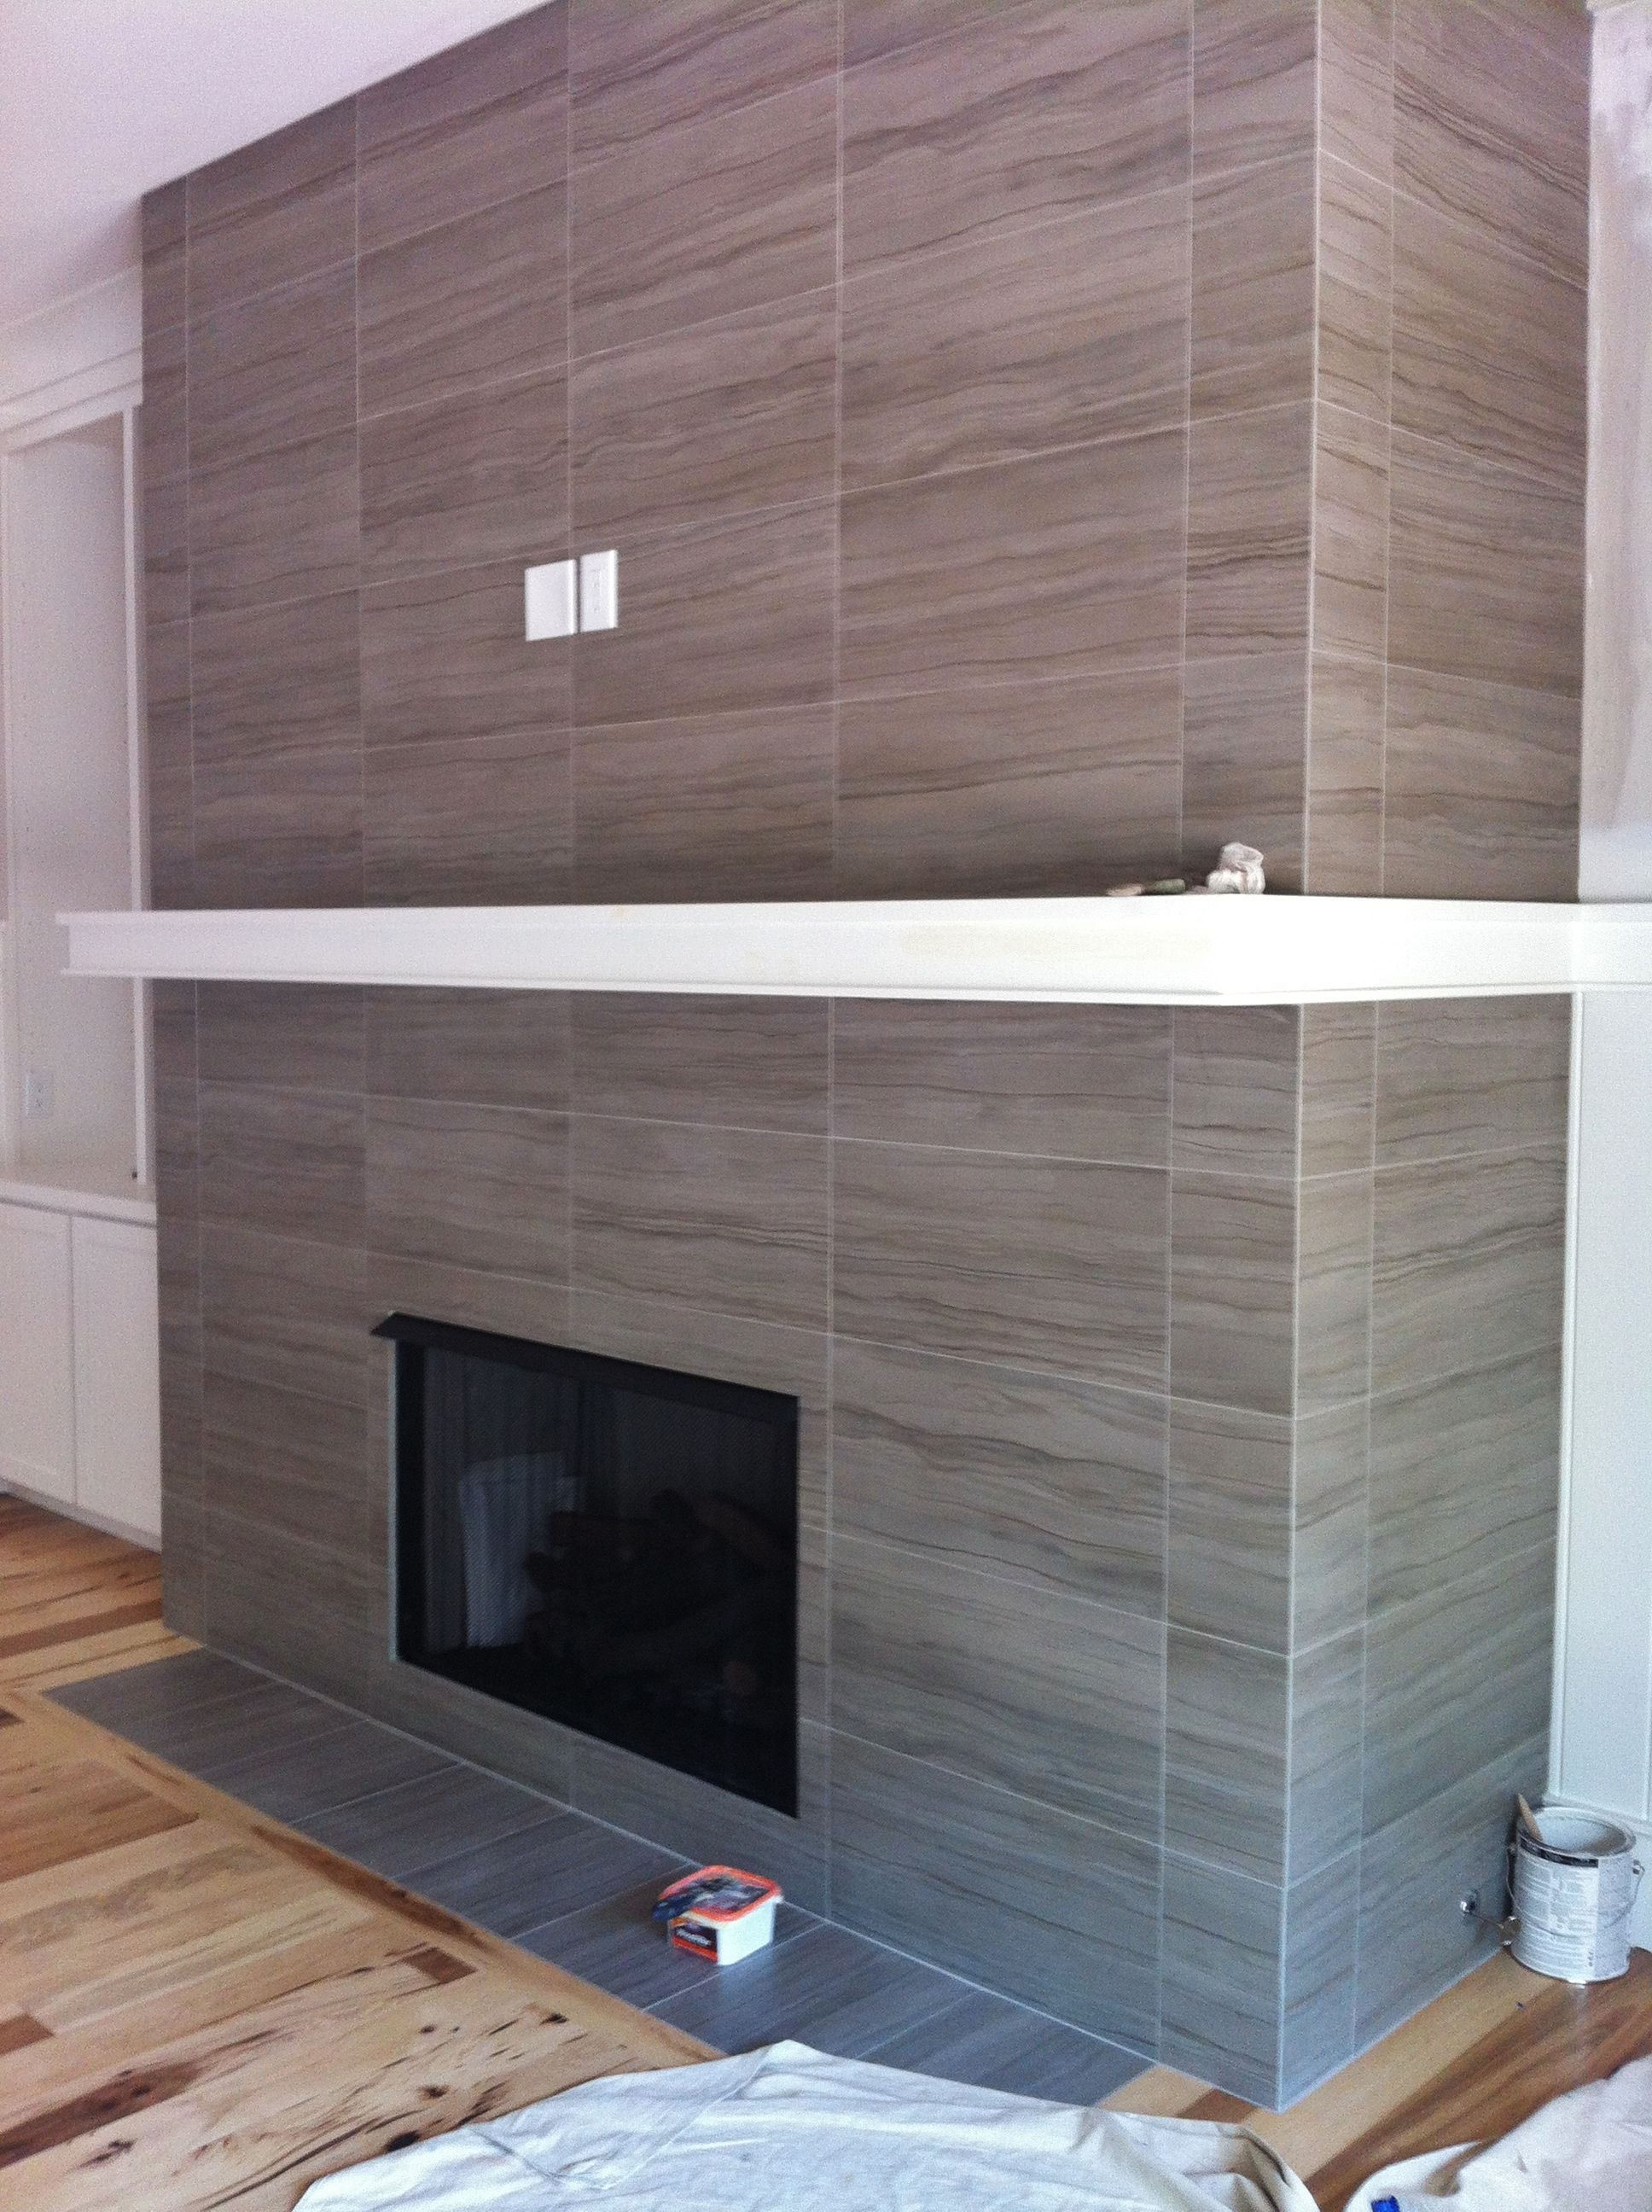 12x24 porcelain tile on fireplace wall and return walls, floor to ...